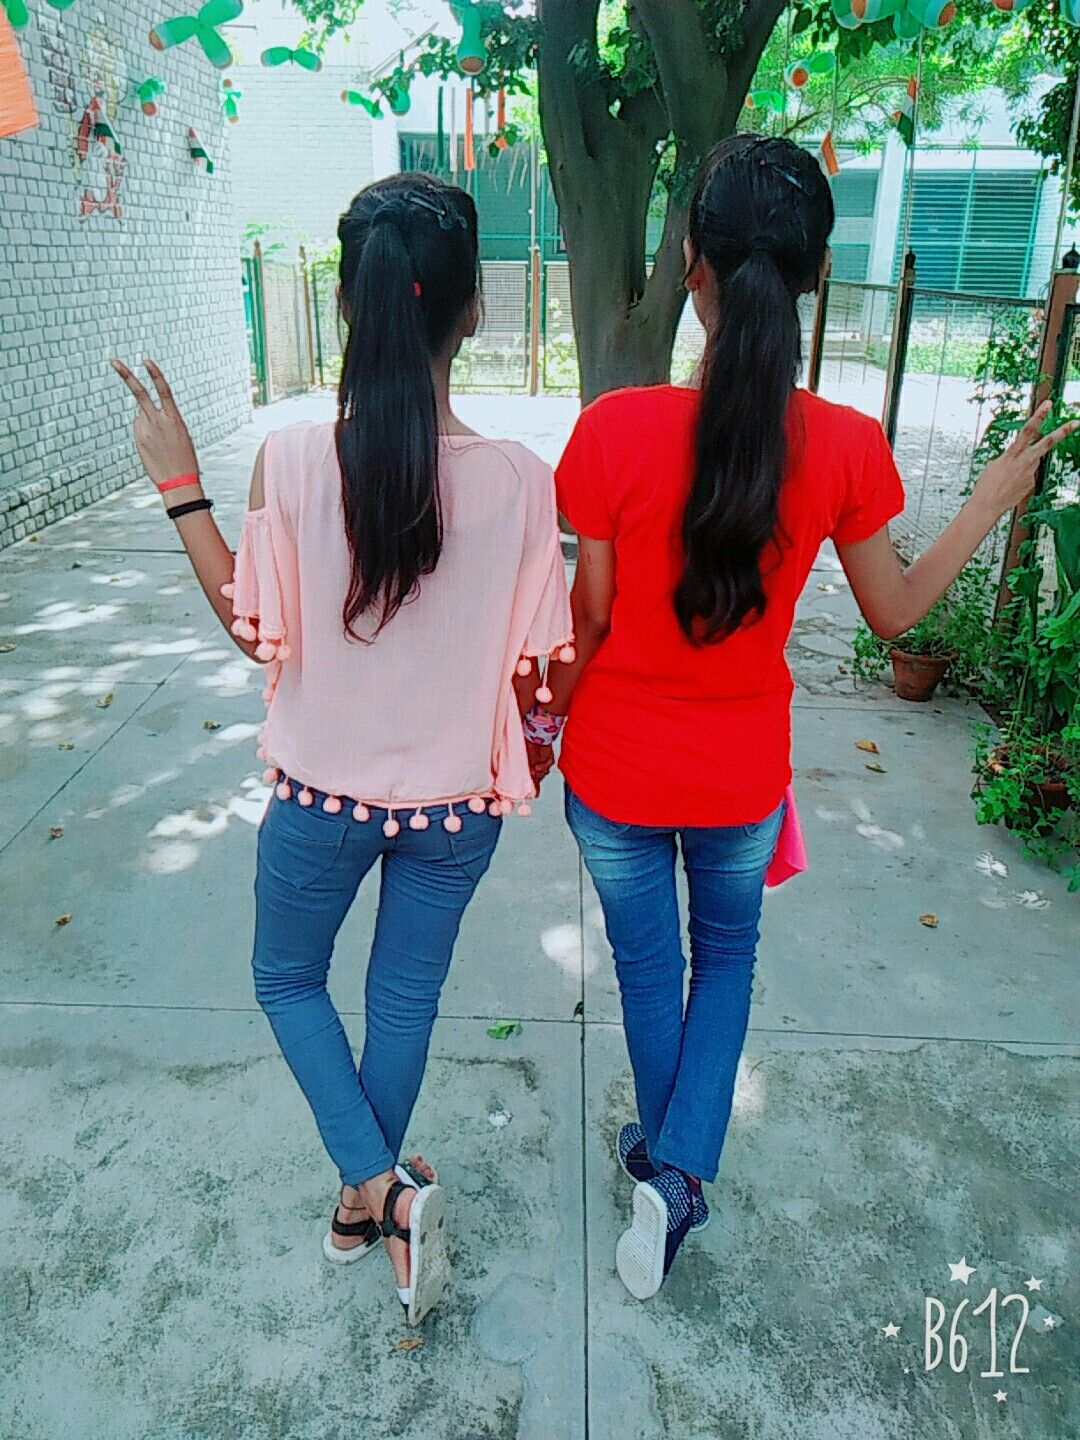 Friendship | #HiDdEn_FaCe_Dpzzz #Osm in 2019 | Friendship ...